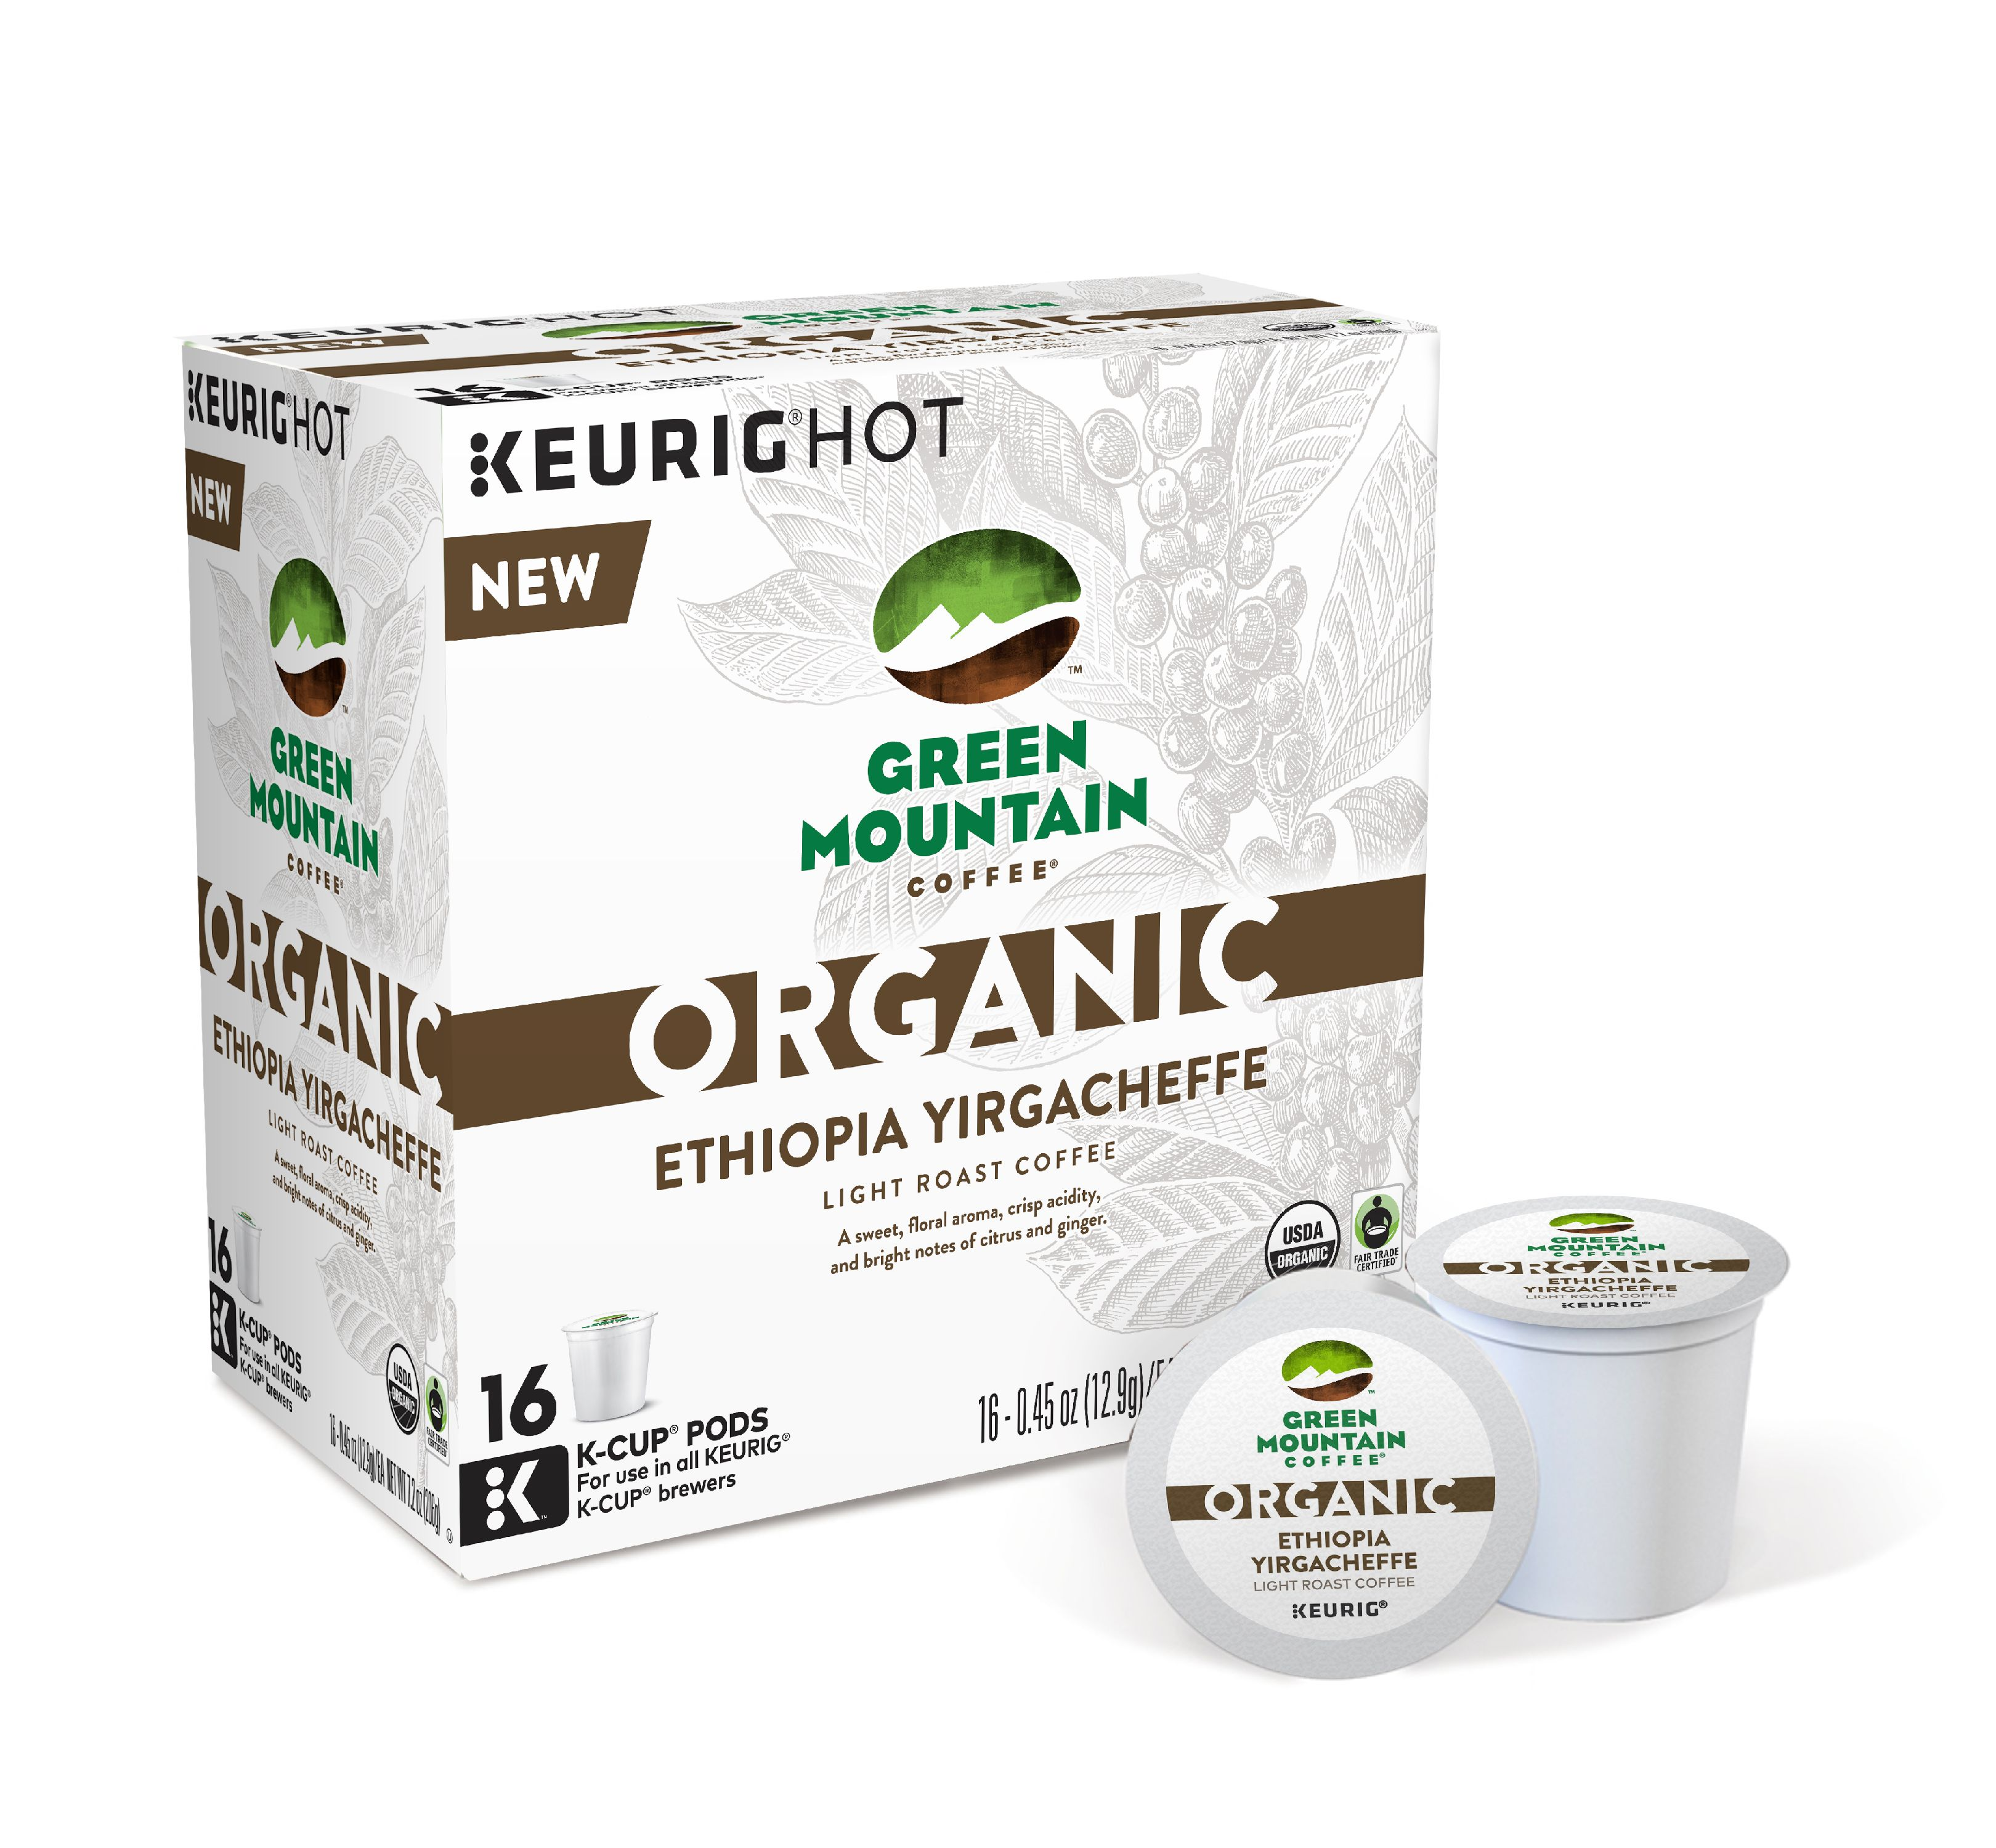 Green Mountain Coffee Organic Ethiopia Yirgacheffe Coffee Keurig Single-Serve K-Cup pods, Light